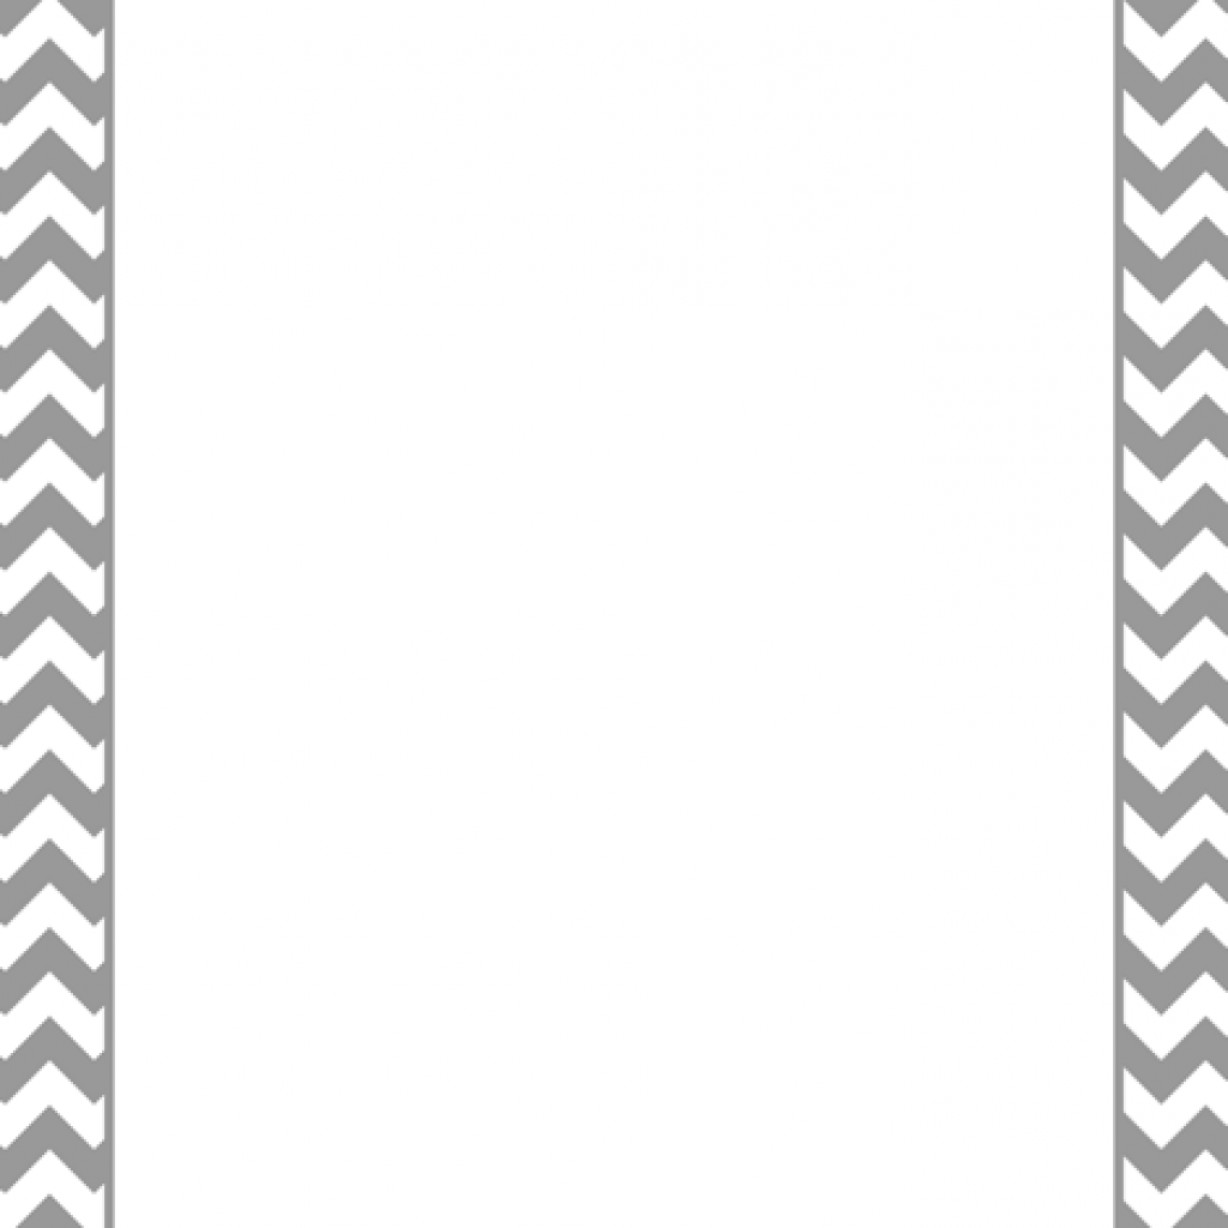 Gray Chevron Cliparts Free Download Clip Art.